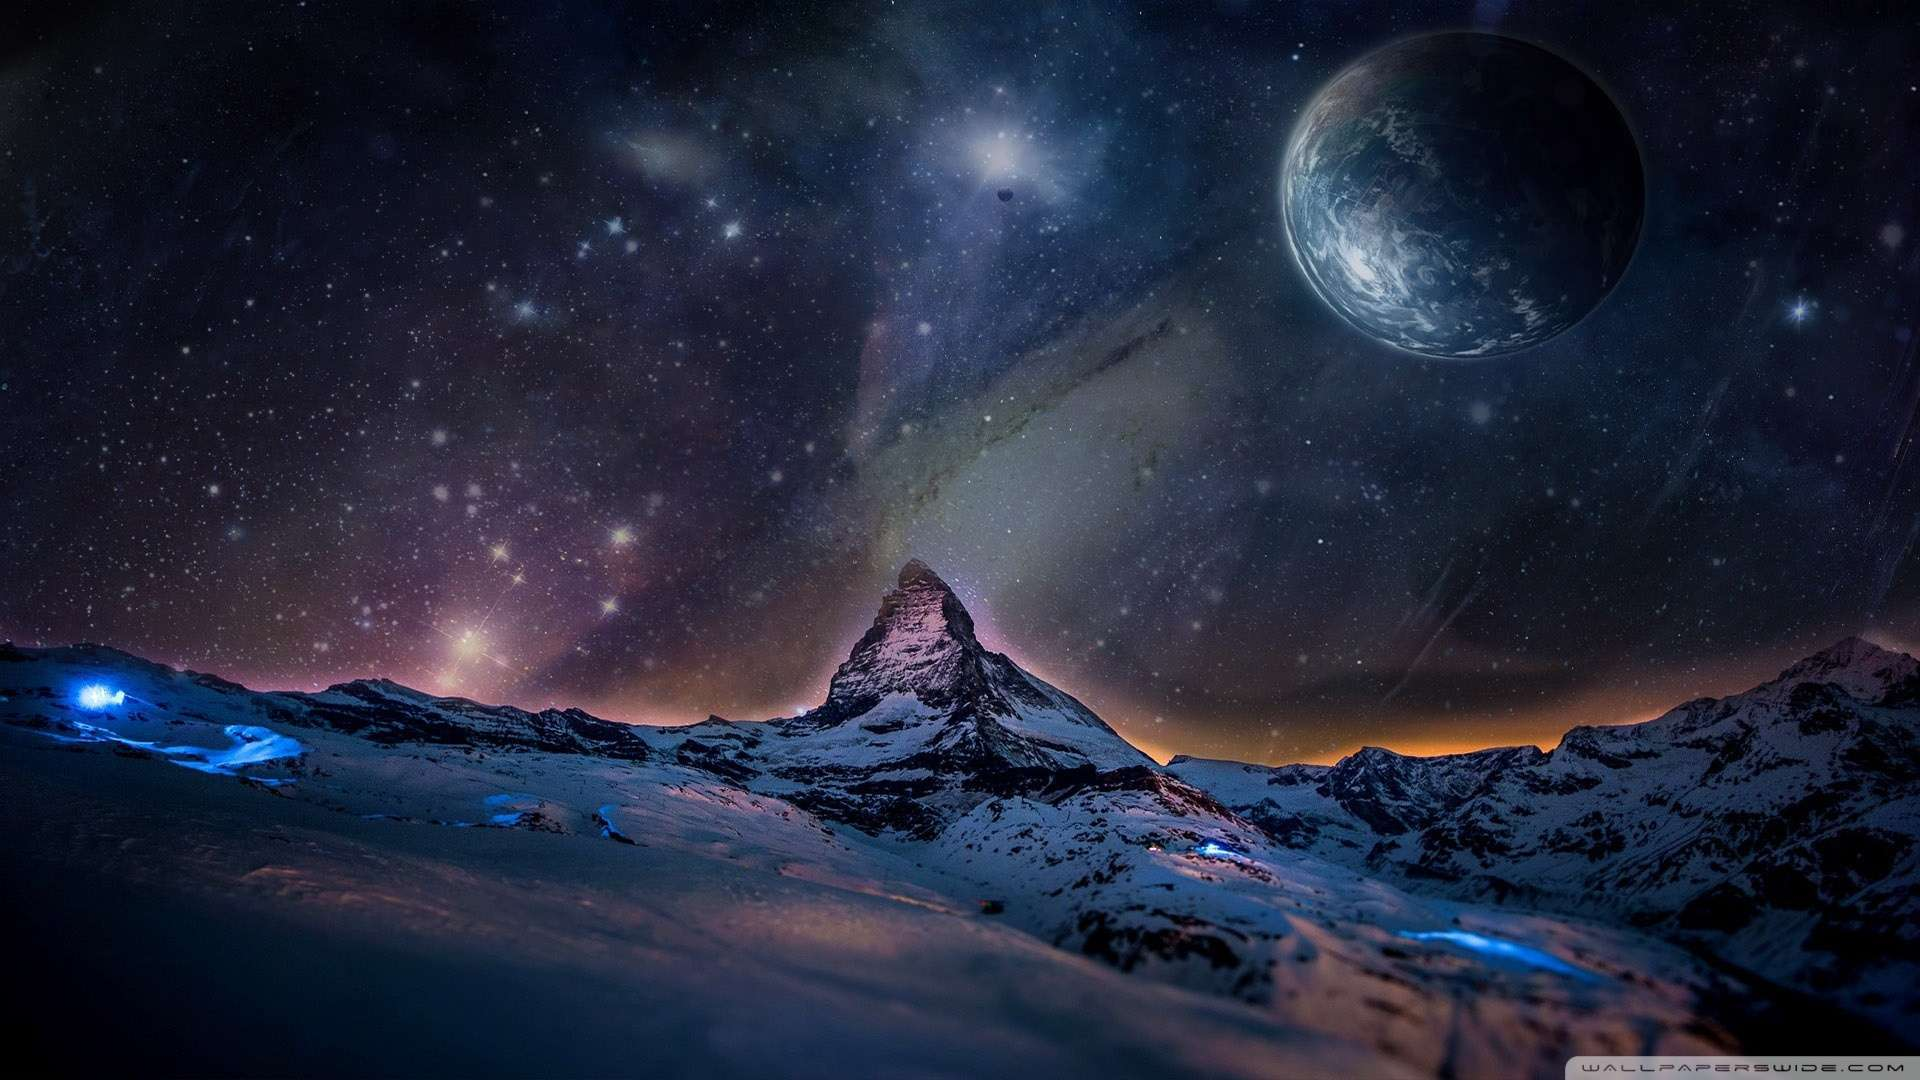 Universe Wallpapers 1080p 75 Images: HD Space Wallpaper